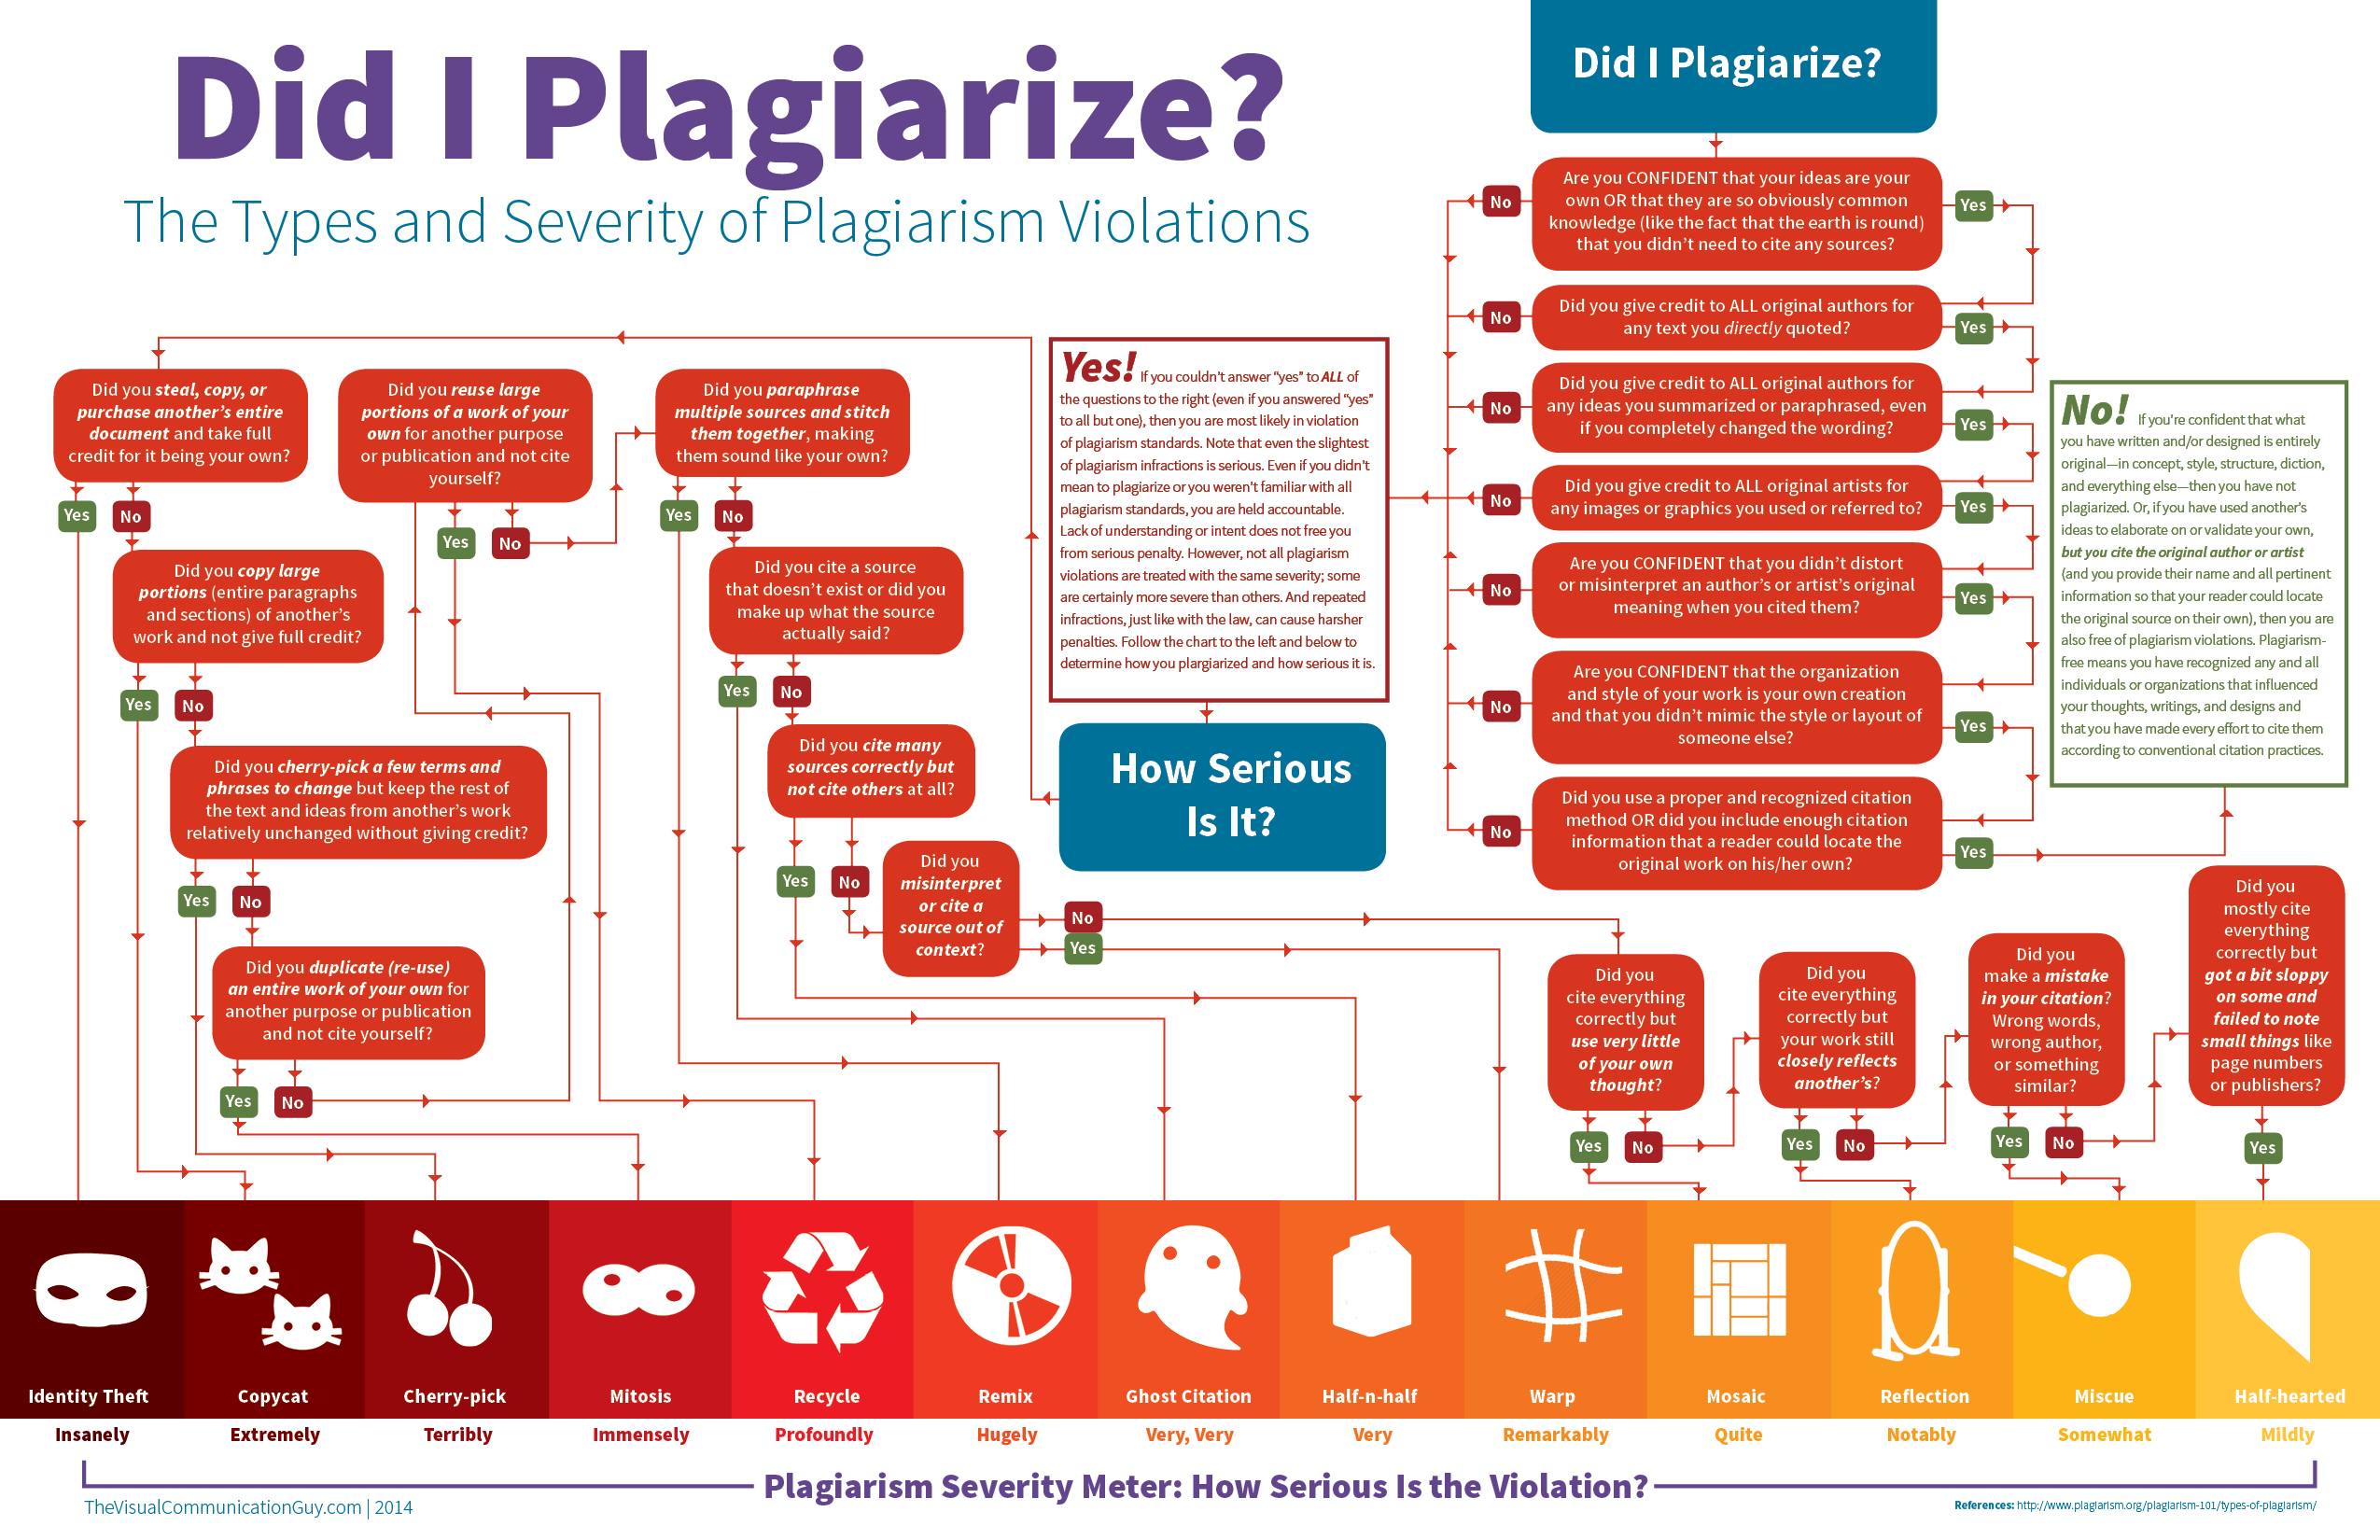 infographic_did i plagiarize